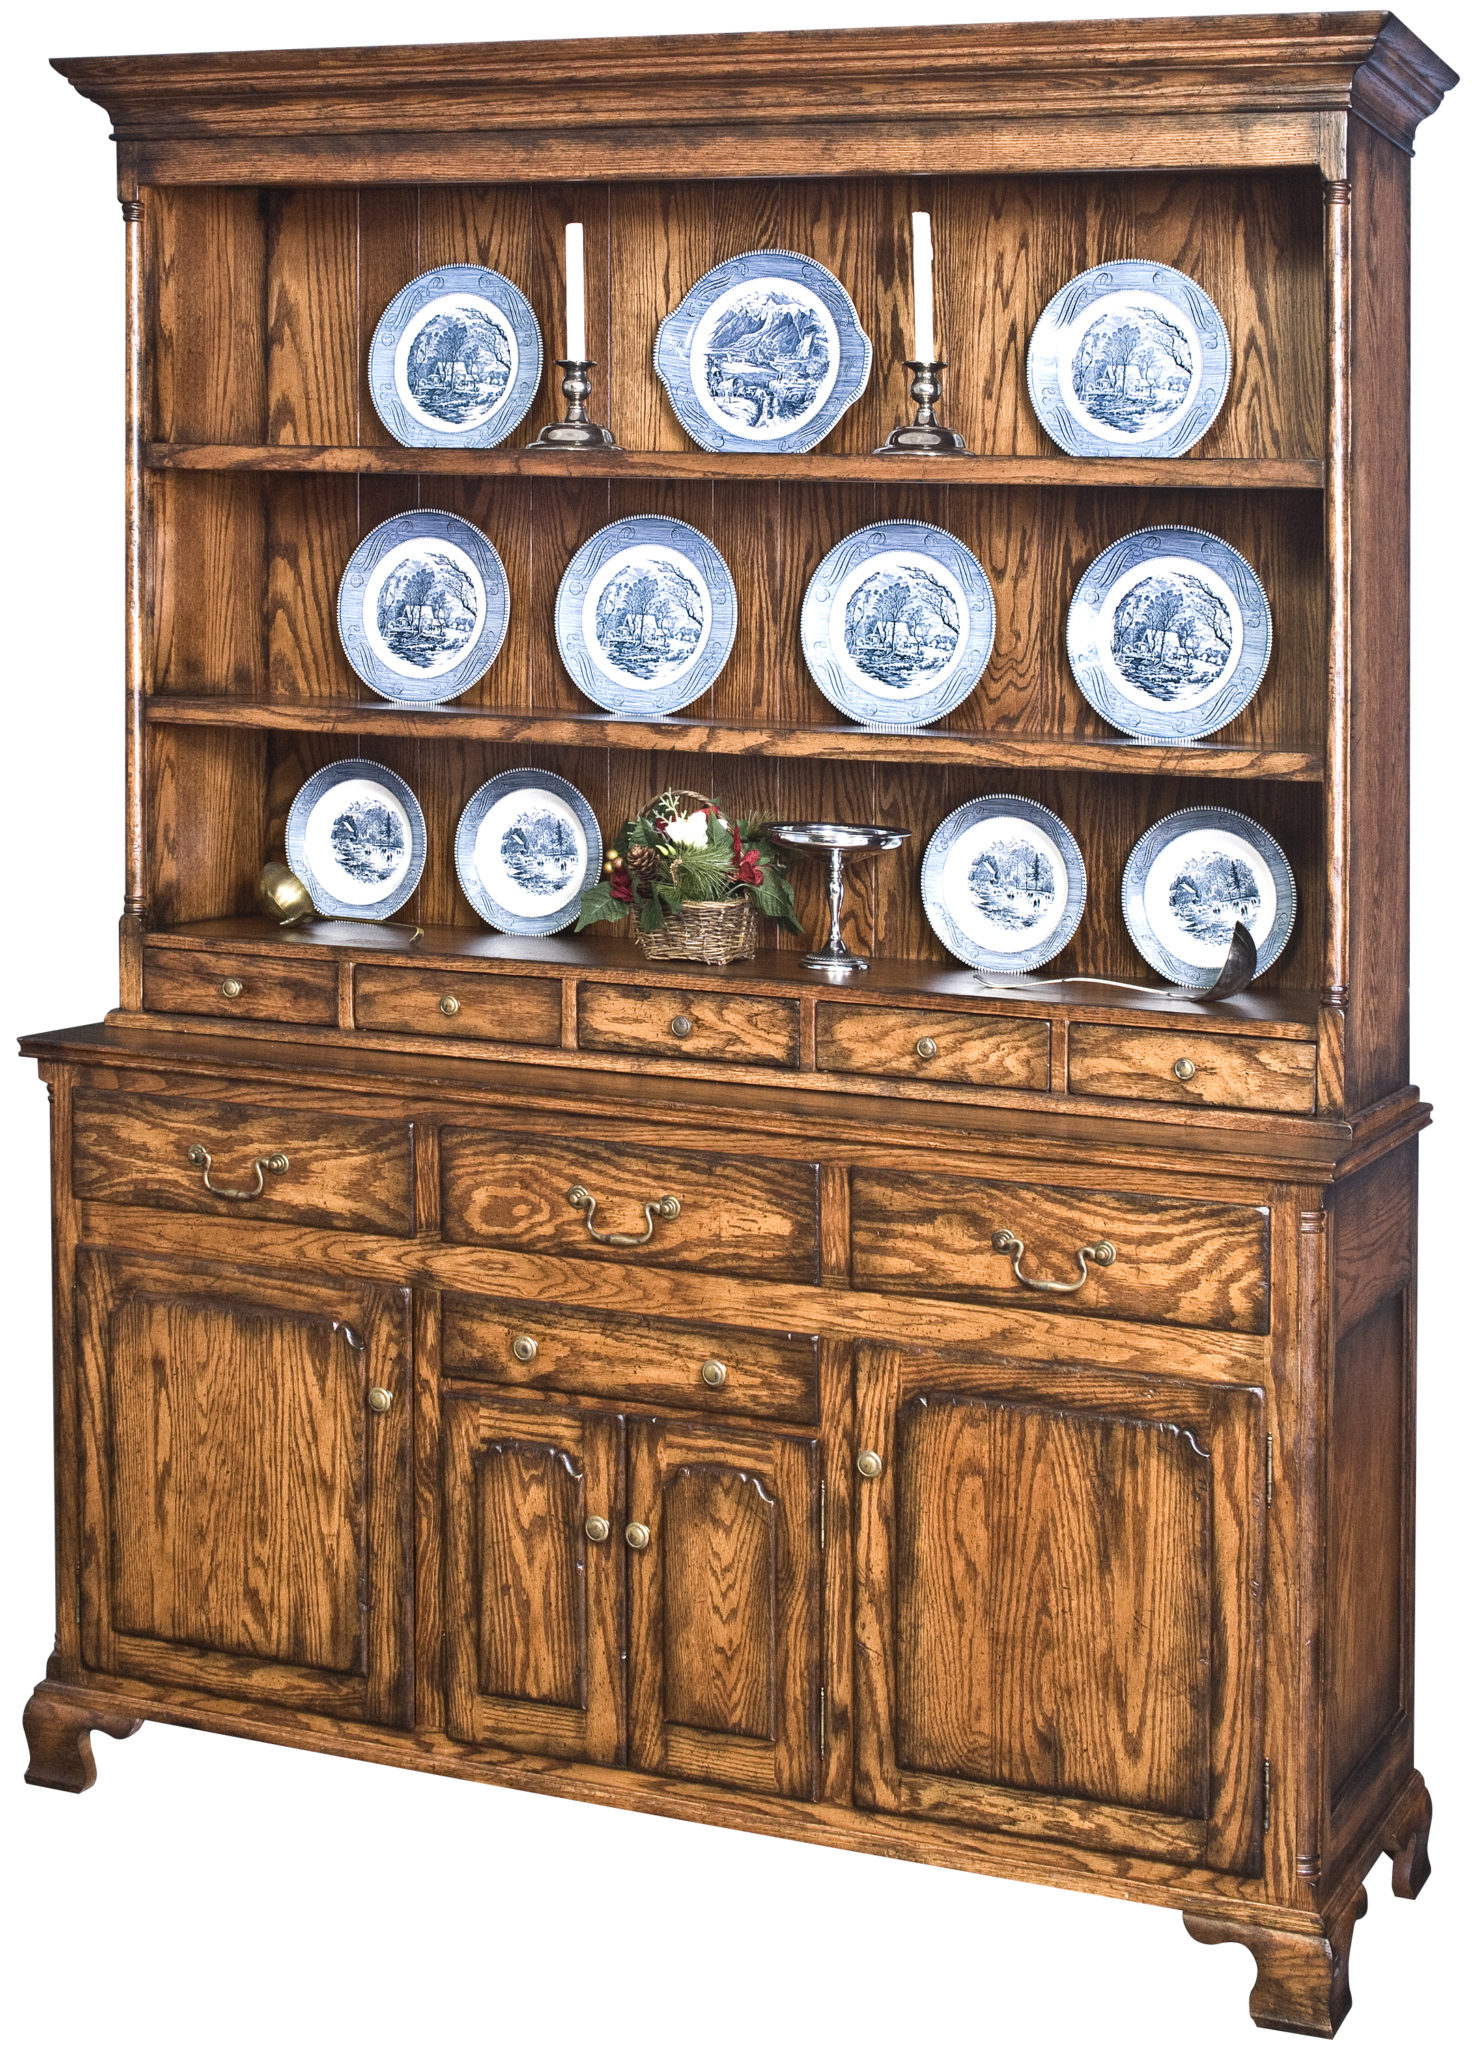 Wallace Open Top Hutch Image